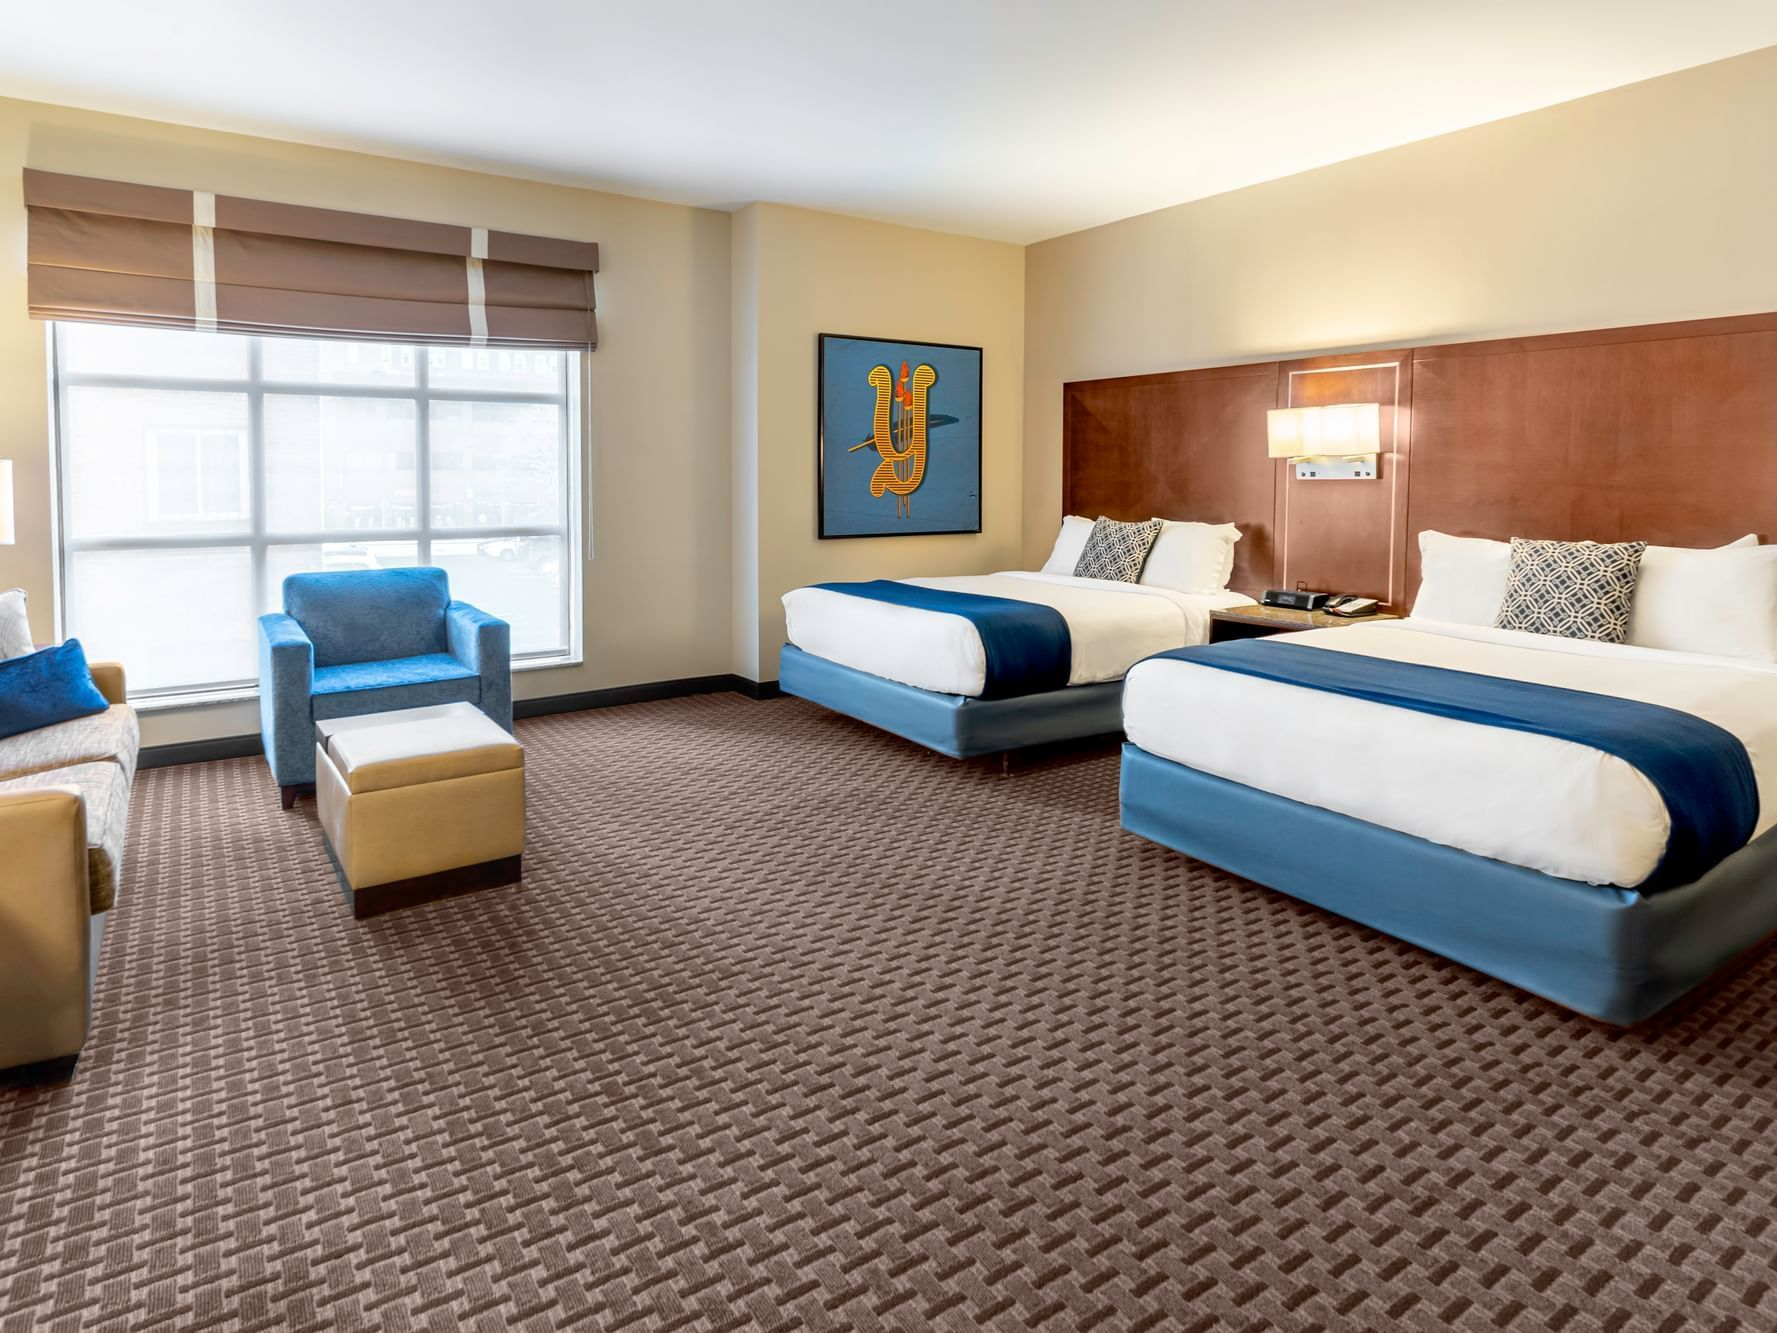 Studio Suite with two beds at New Haven Hotel